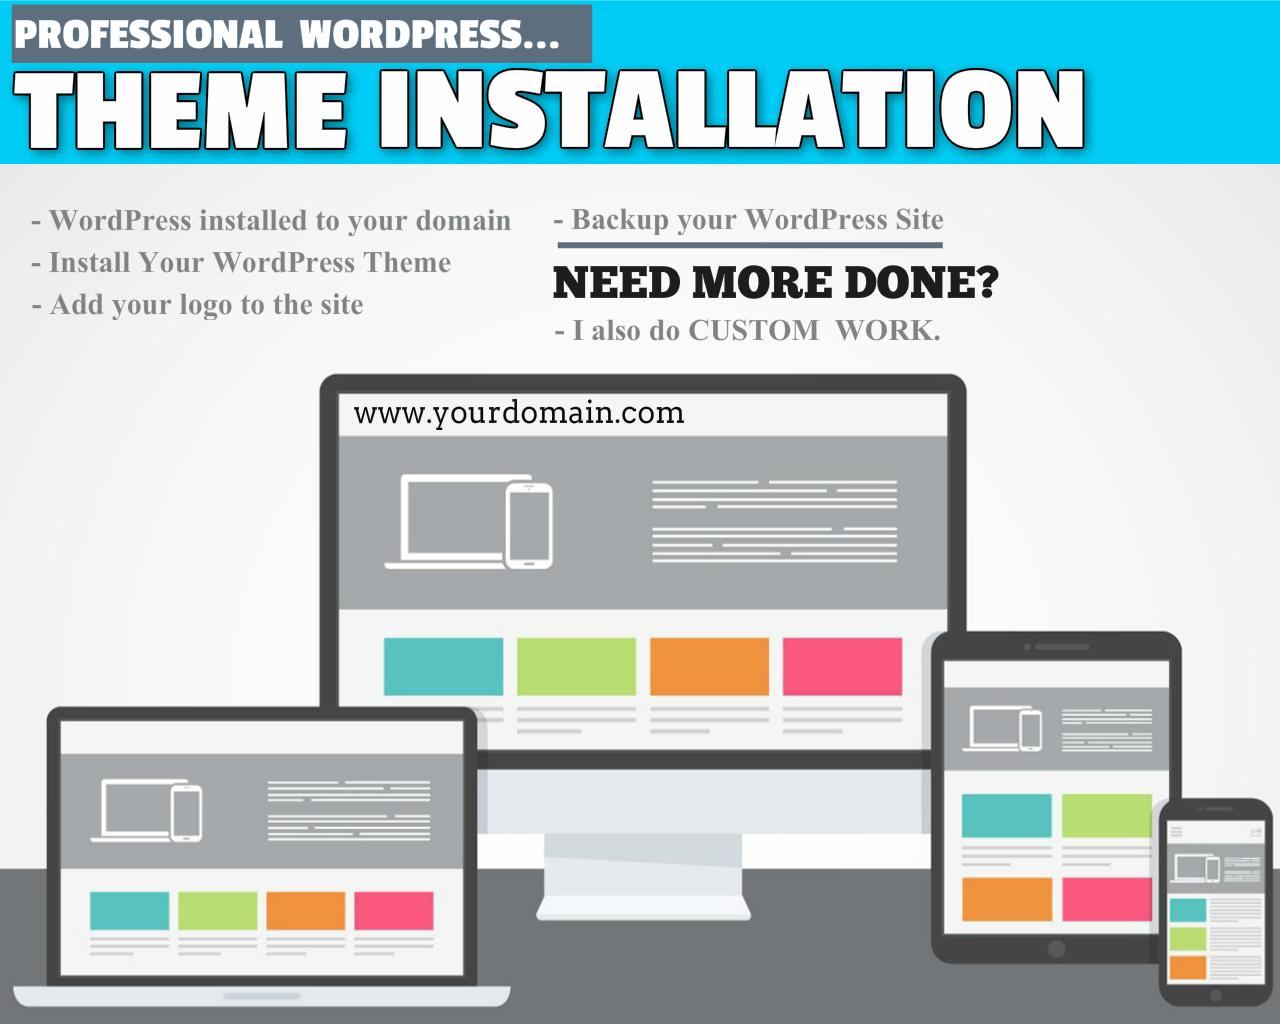 WordPress Theme Installation (Incl. Demo Content, Logo, Plugins, Shop Set-up) by WPJunkiez - 98686